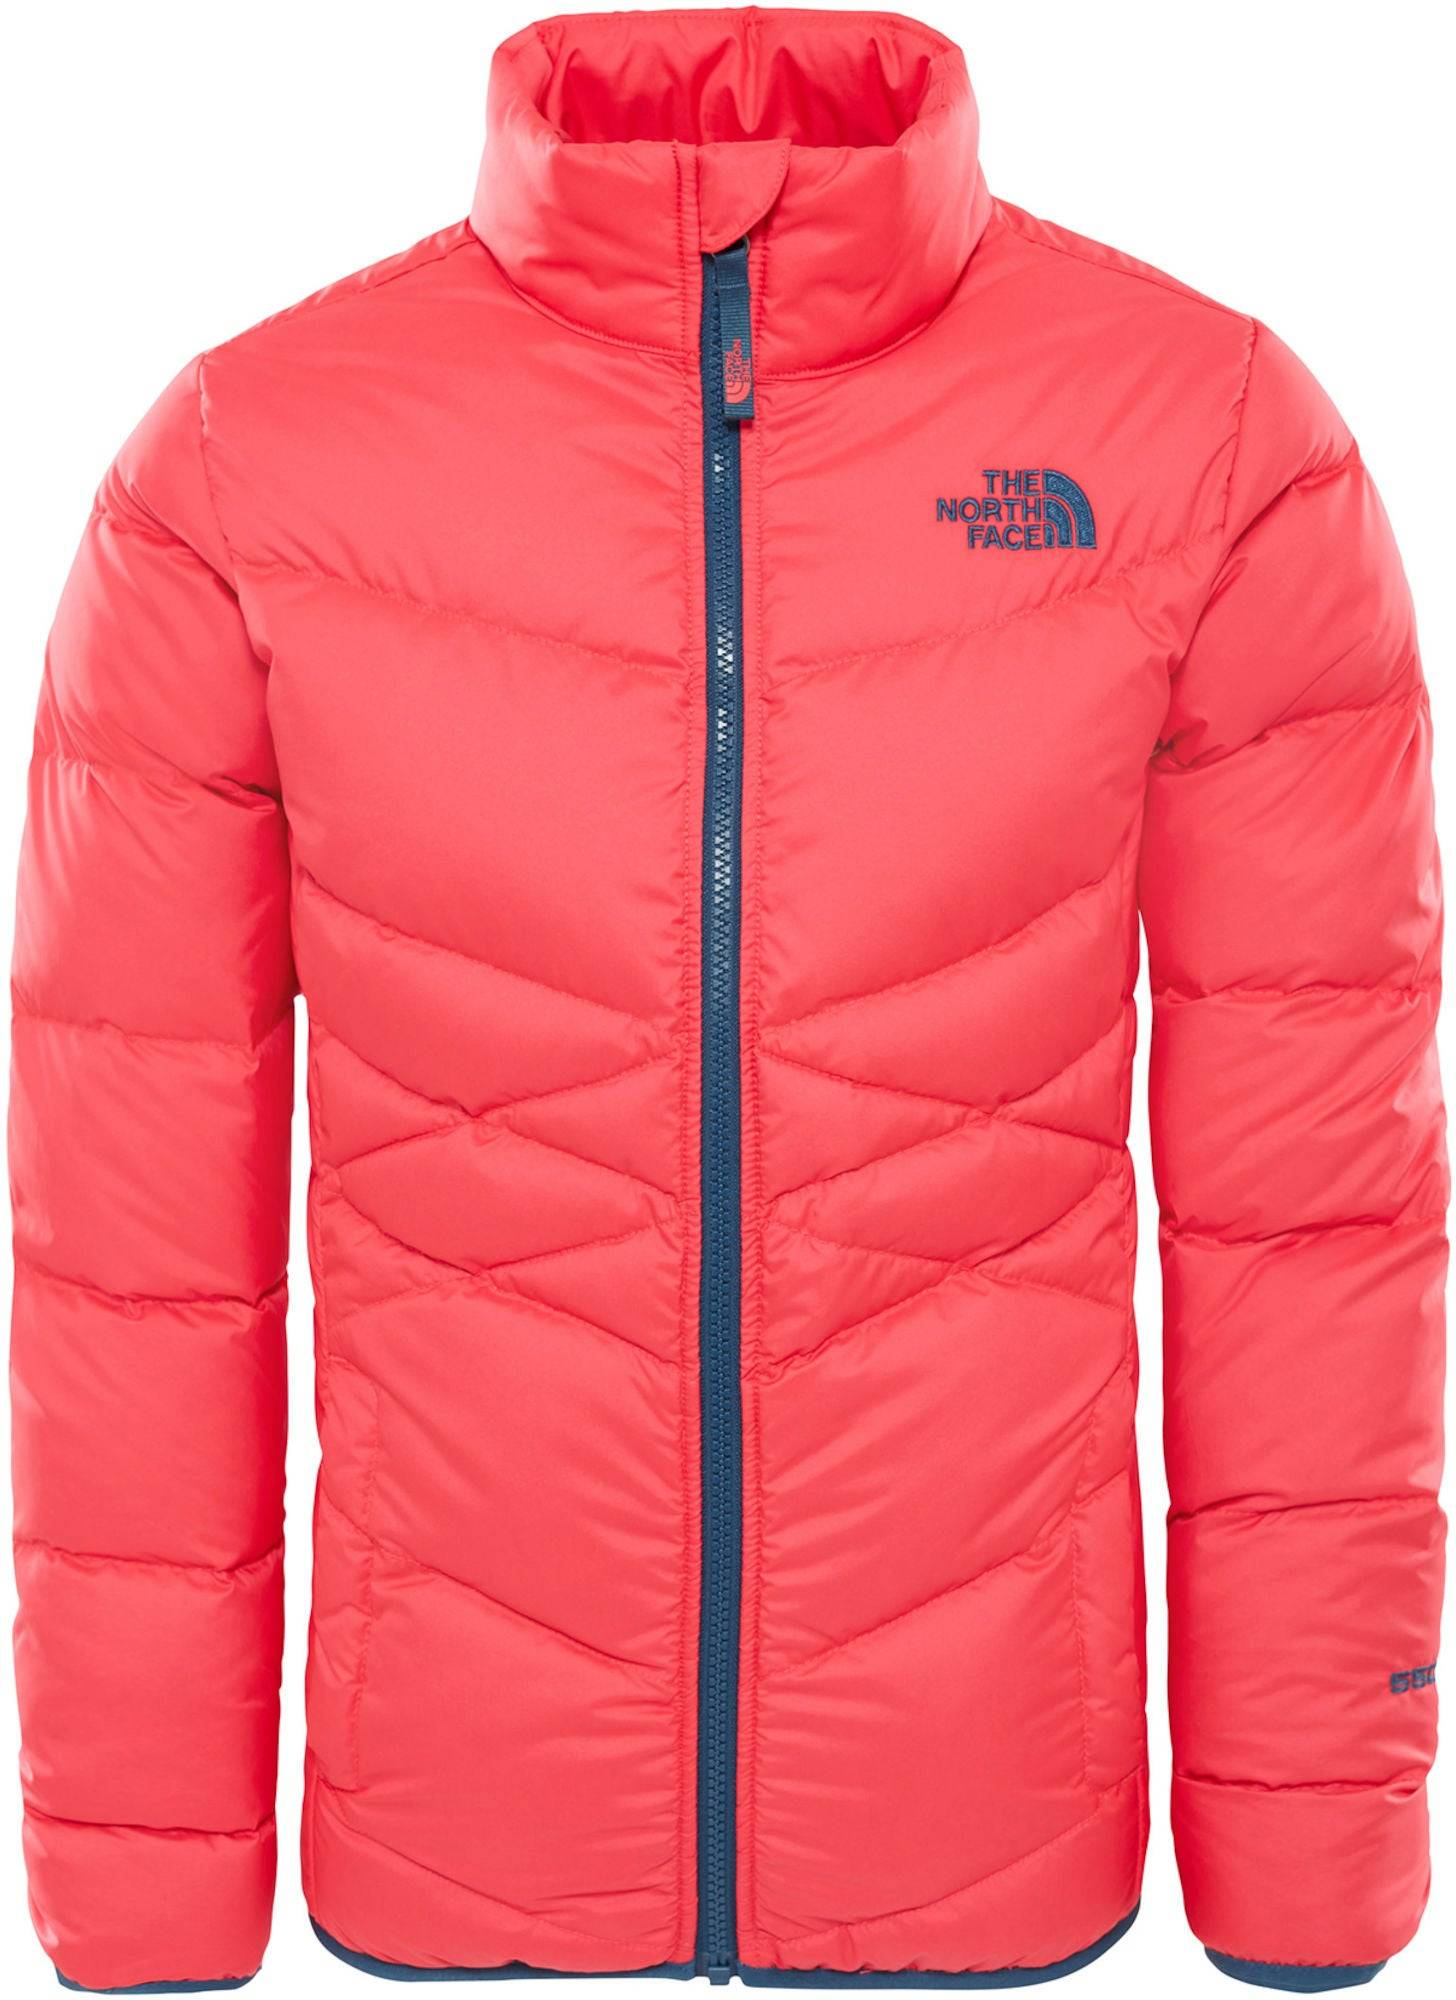 The North Face Andes Down Jacka, Atomic Pink S